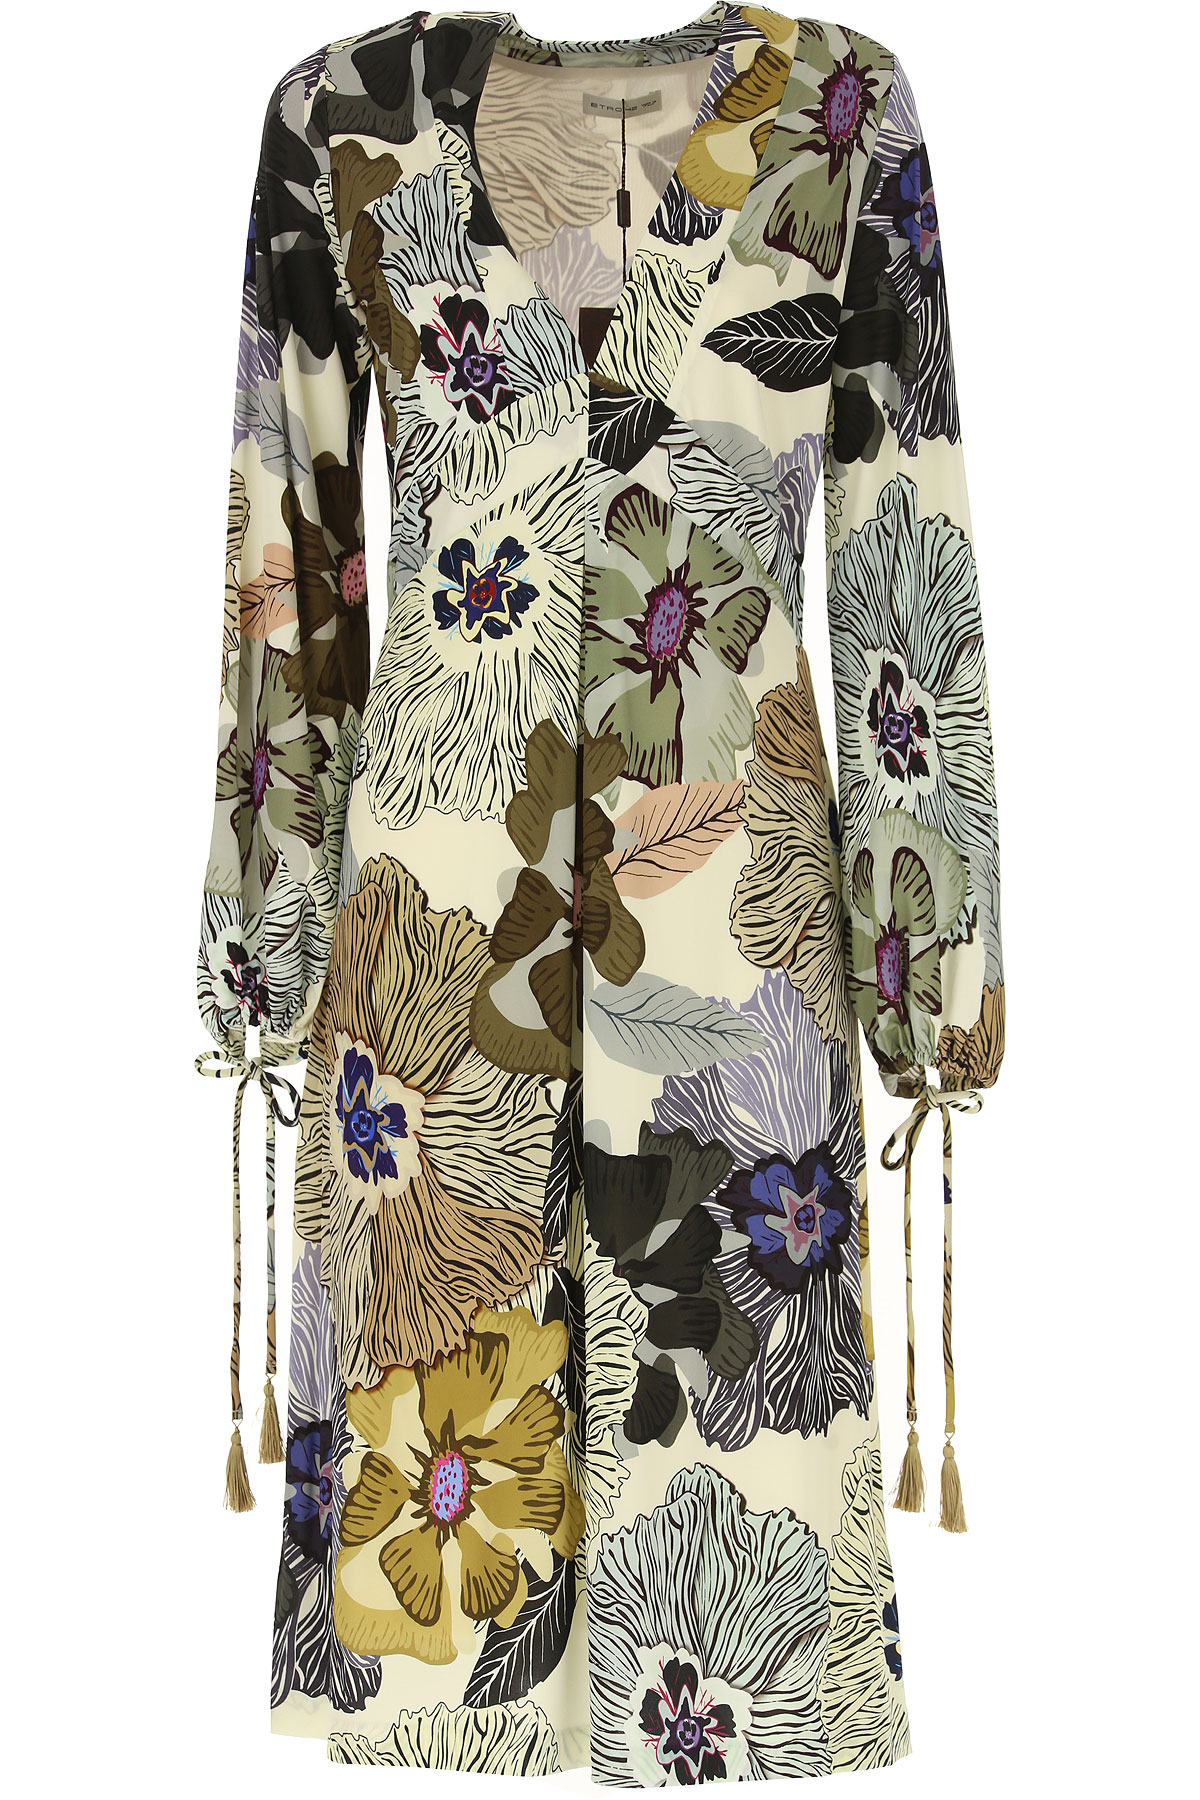 Etro Dress for Women, Evening Cocktail Party, Cream, Viscose, 2019, 10 6 8